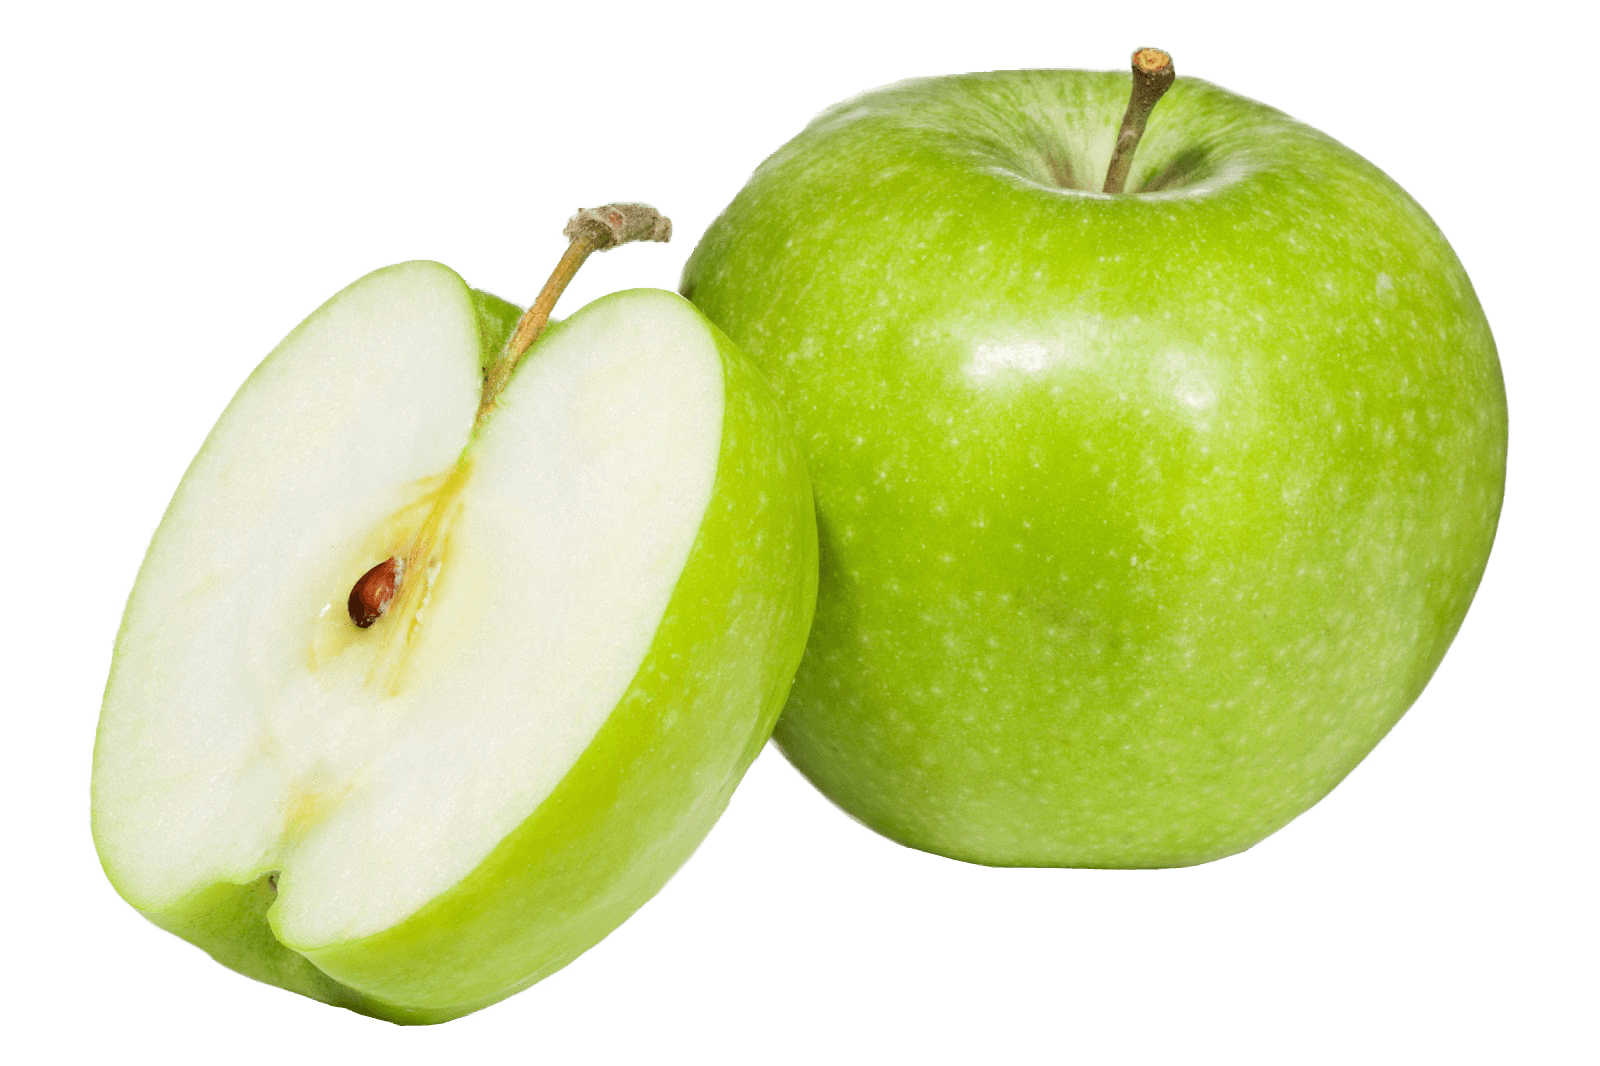 Apple open slice transparent. Green apples png vector black and white